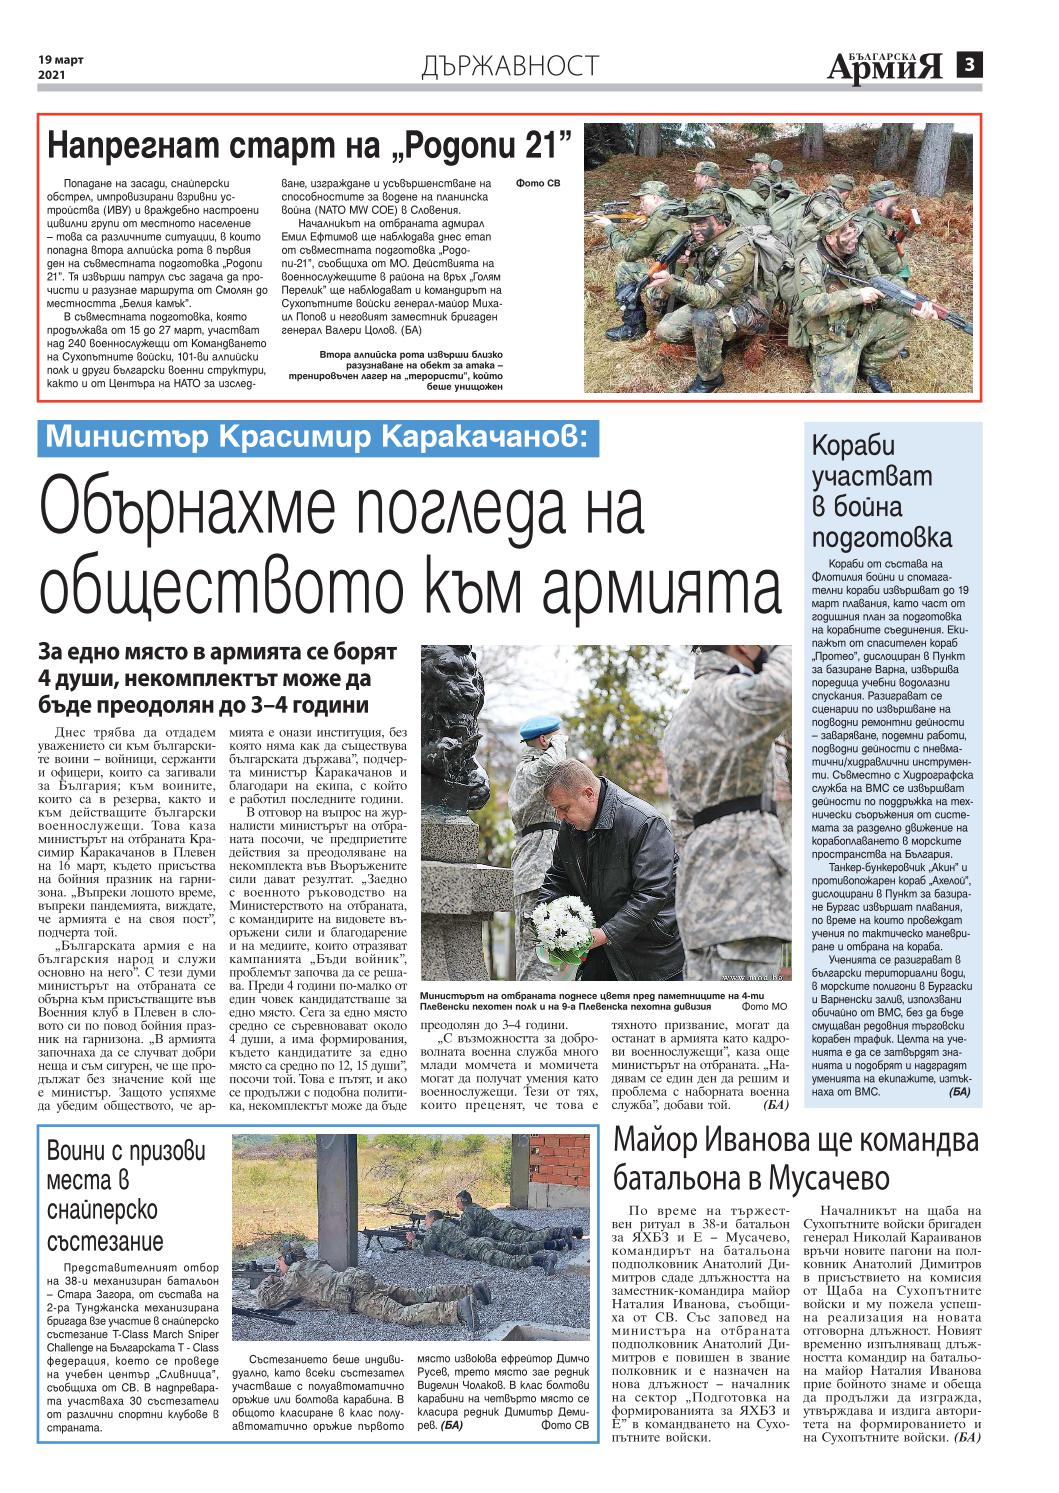 https://armymedia.bg/wp-content/uploads/2021/04/03.page1_-152.jpg